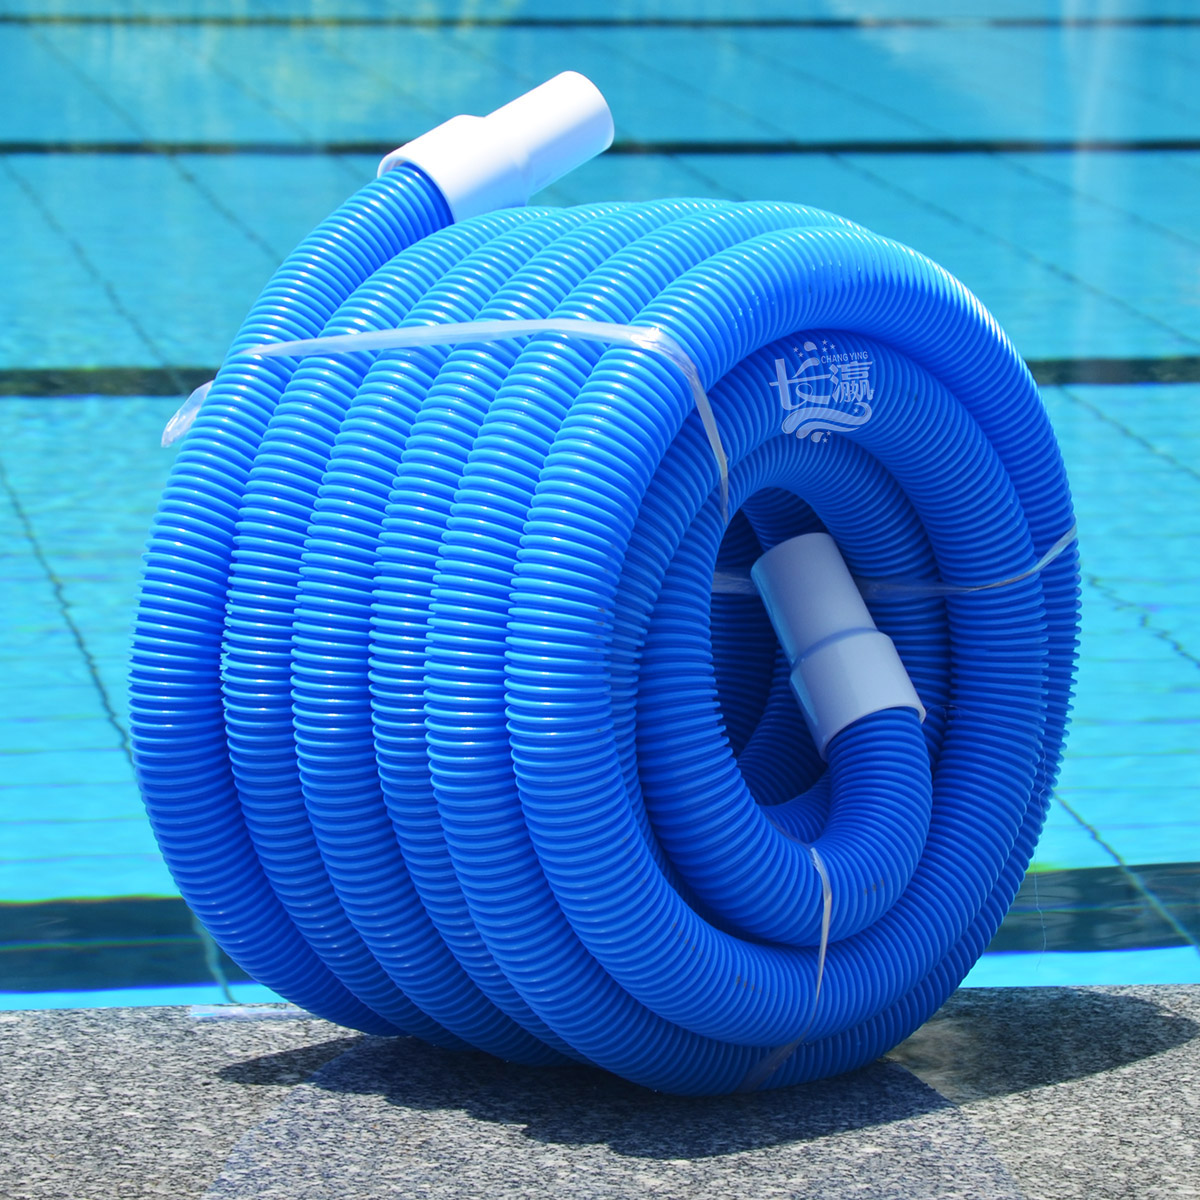 China Pool Vacuum Hose, China Pool Vacuum Hose Shopping Guide at ...